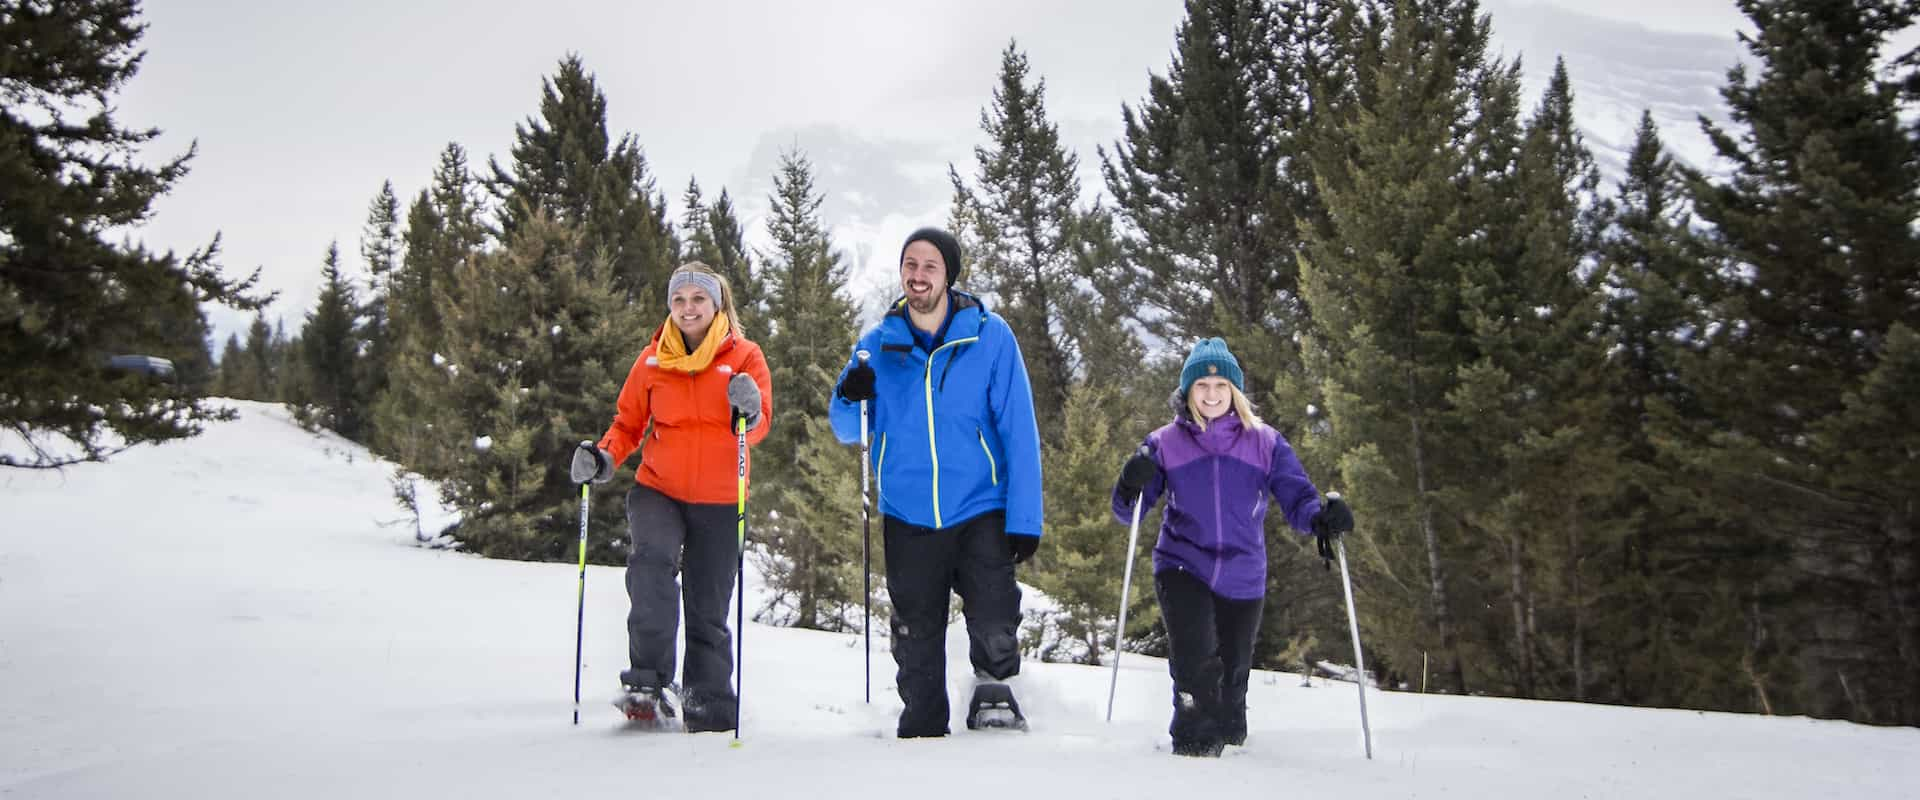 Walk through fresh snow on a Banff snowshoeing tour with Discover Banff Tours in the Canadian Rockies